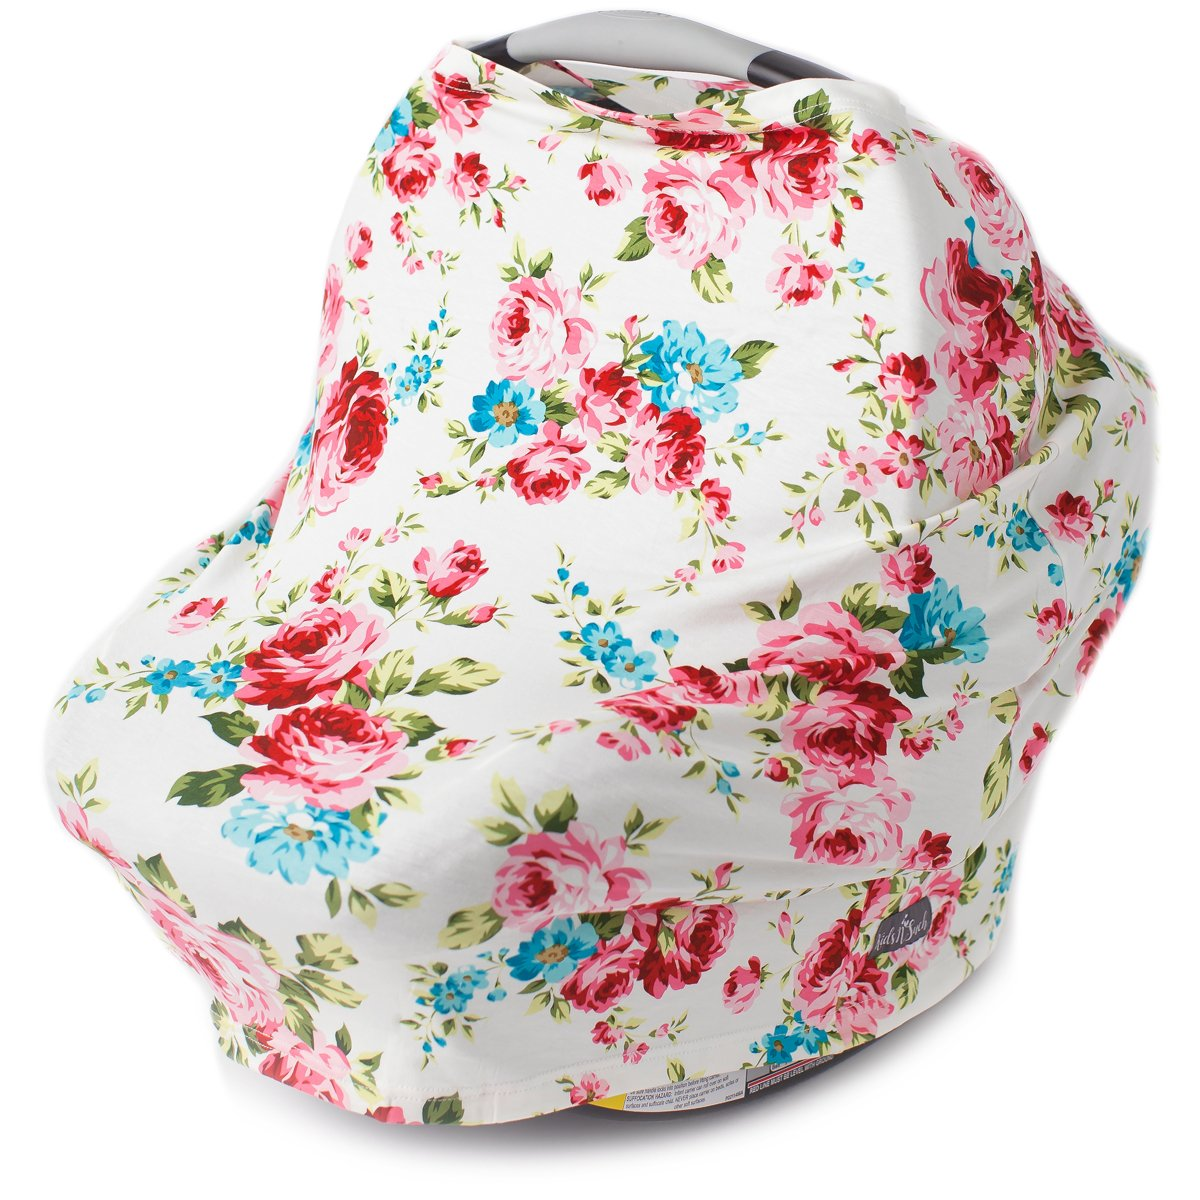 Kids N' Such Multi Use Car Seat Canopy, Nursing Cover, Shopping Cart Cover, and Breastfeeding Scarf- White Floral Carseat Canopy Cover for Baby Girls and Boys